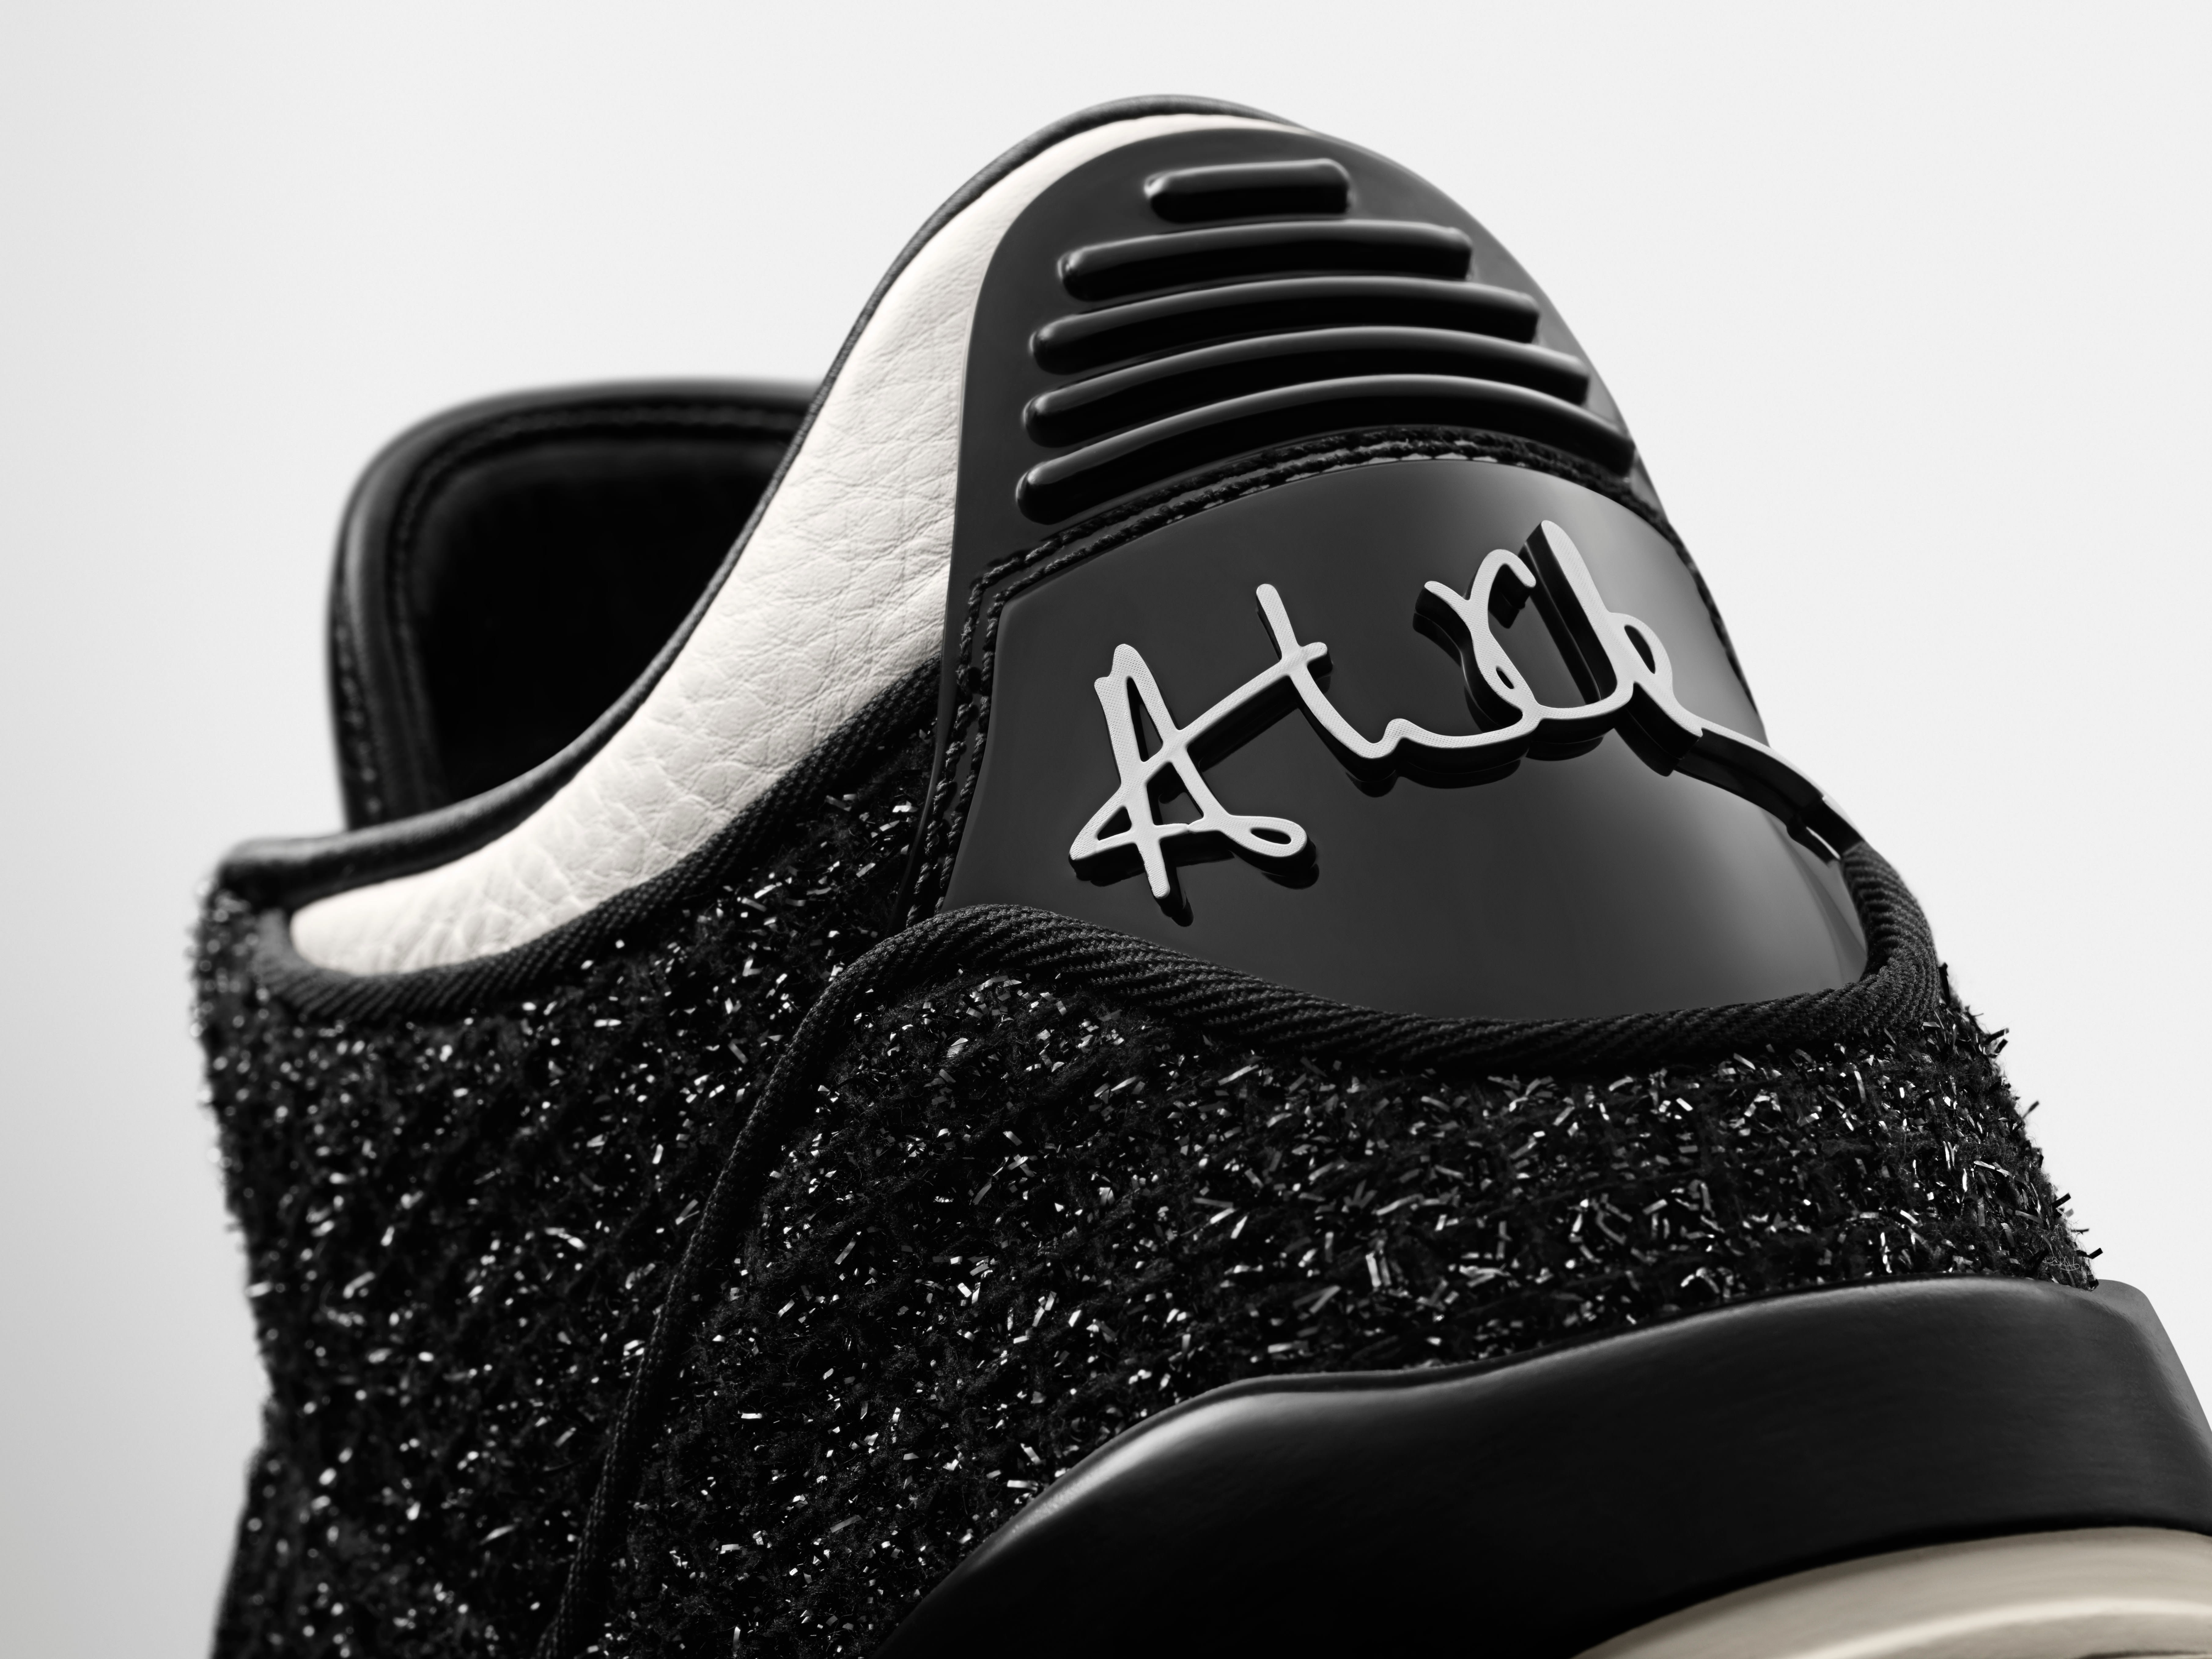 Vogue x Air Jordan 3 SE AWOK 'Black' (Detail)